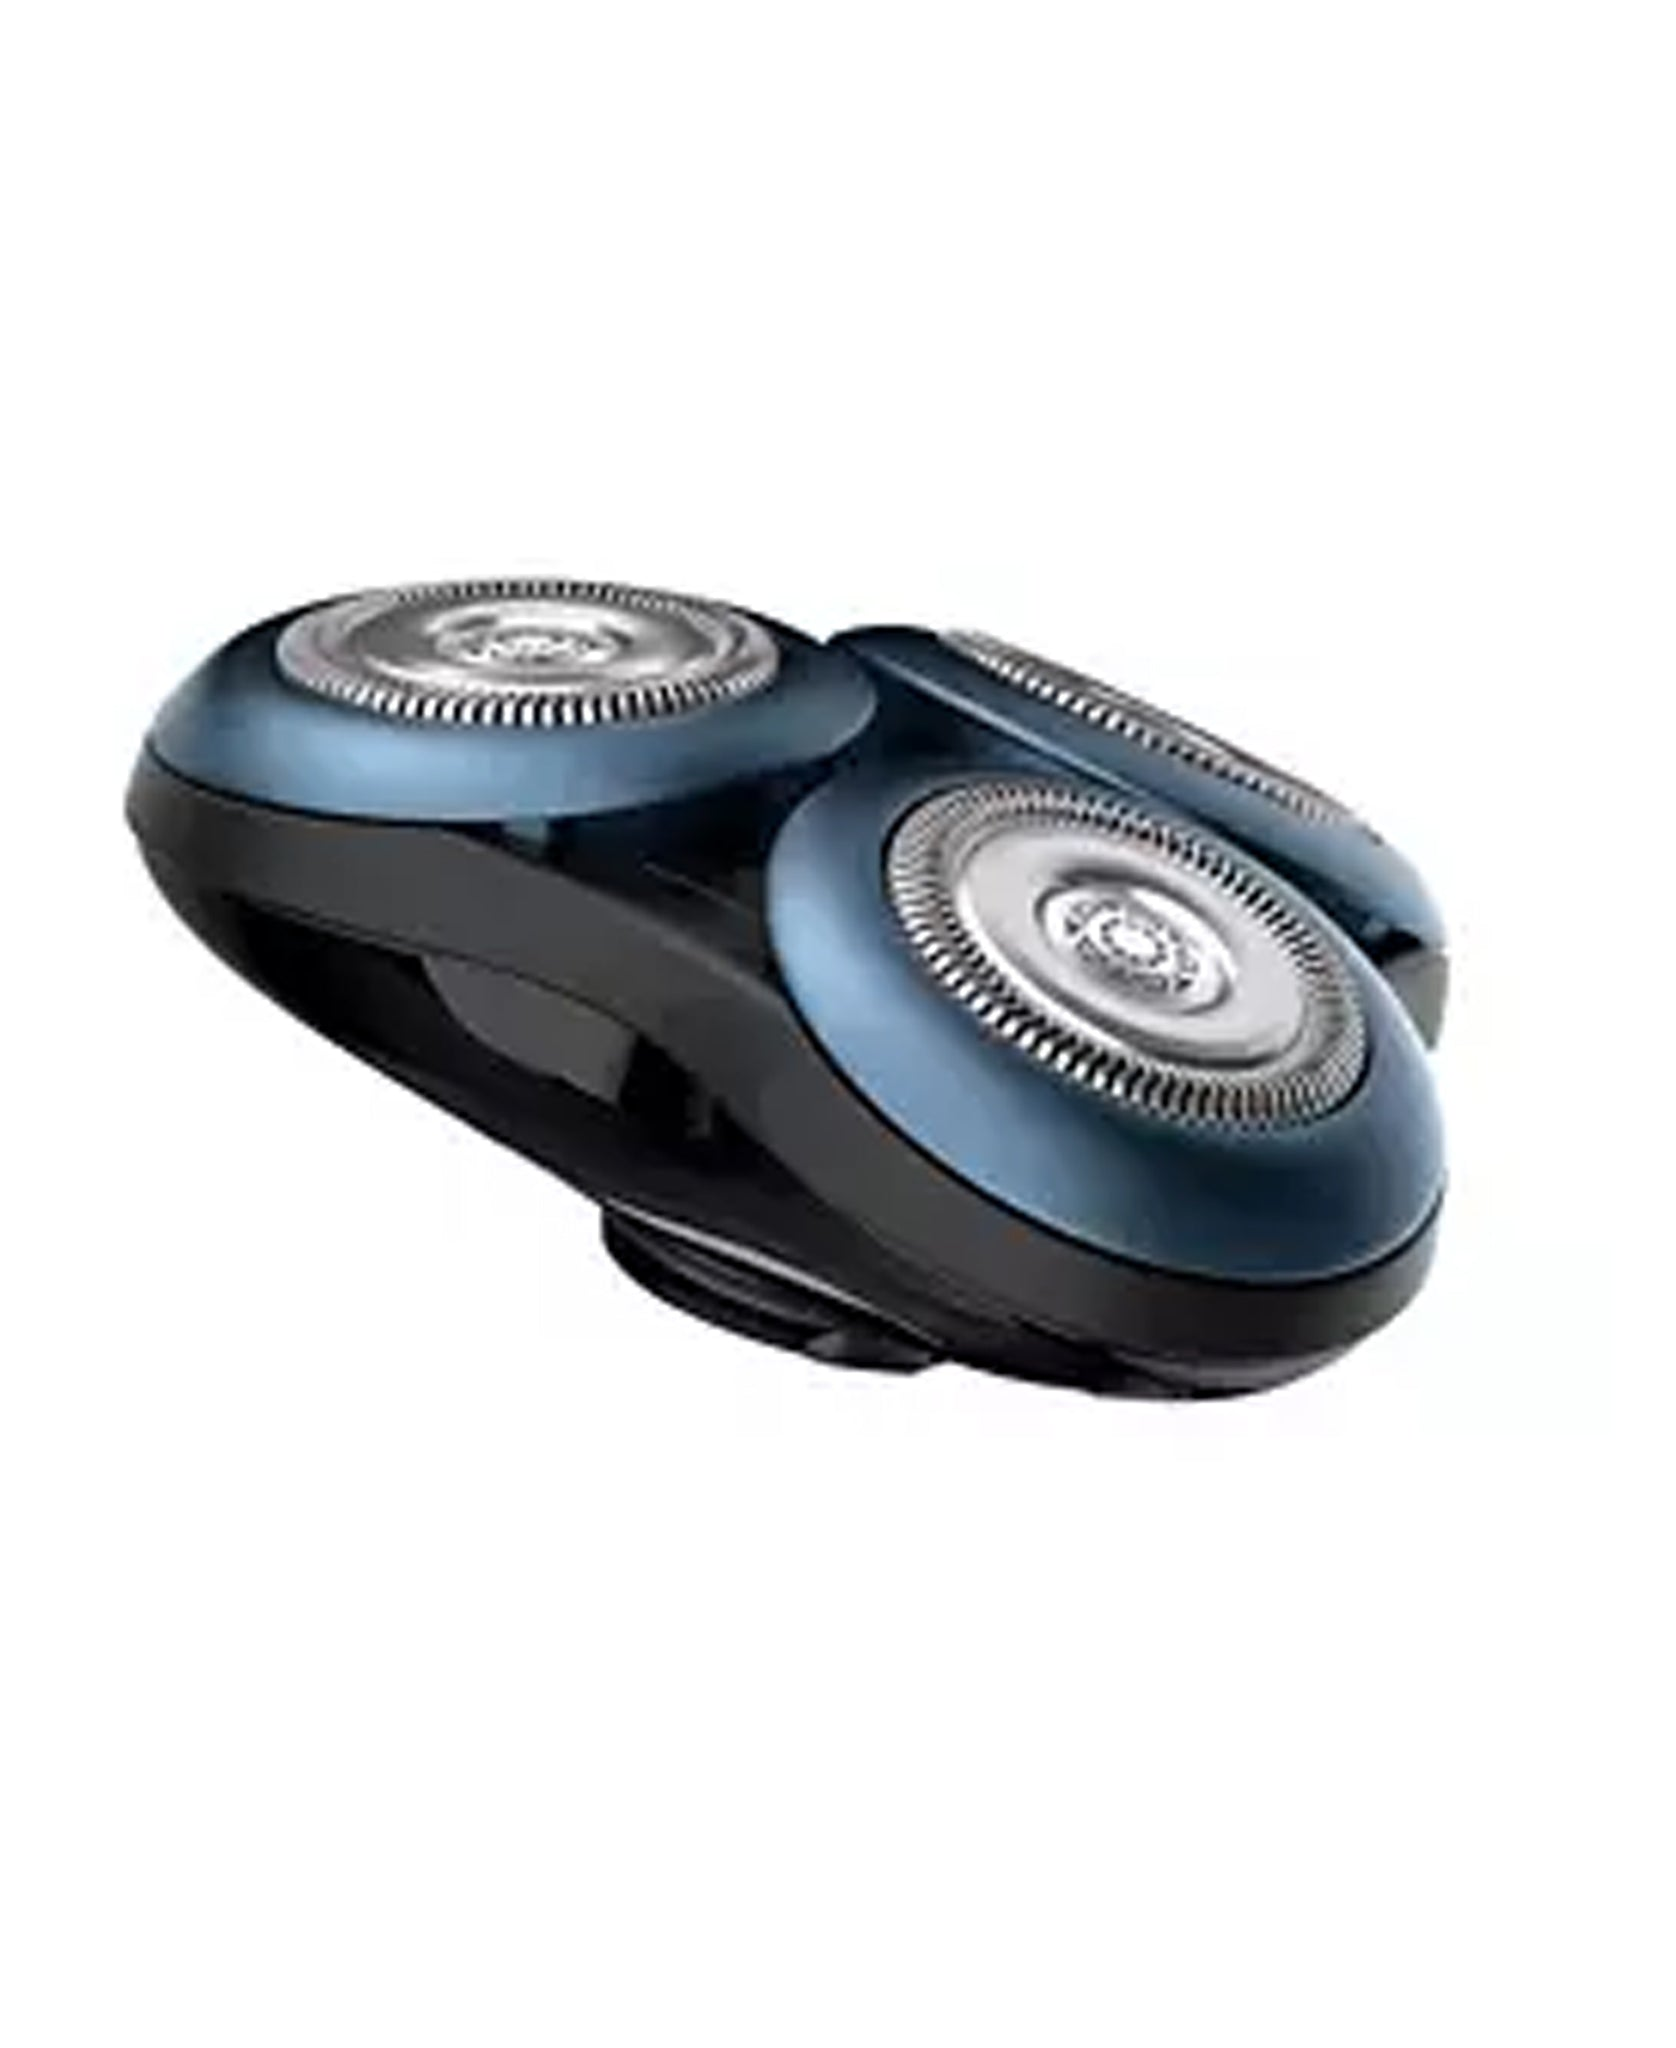 Philips Shaver series 7000 Shaving unit SH70/70